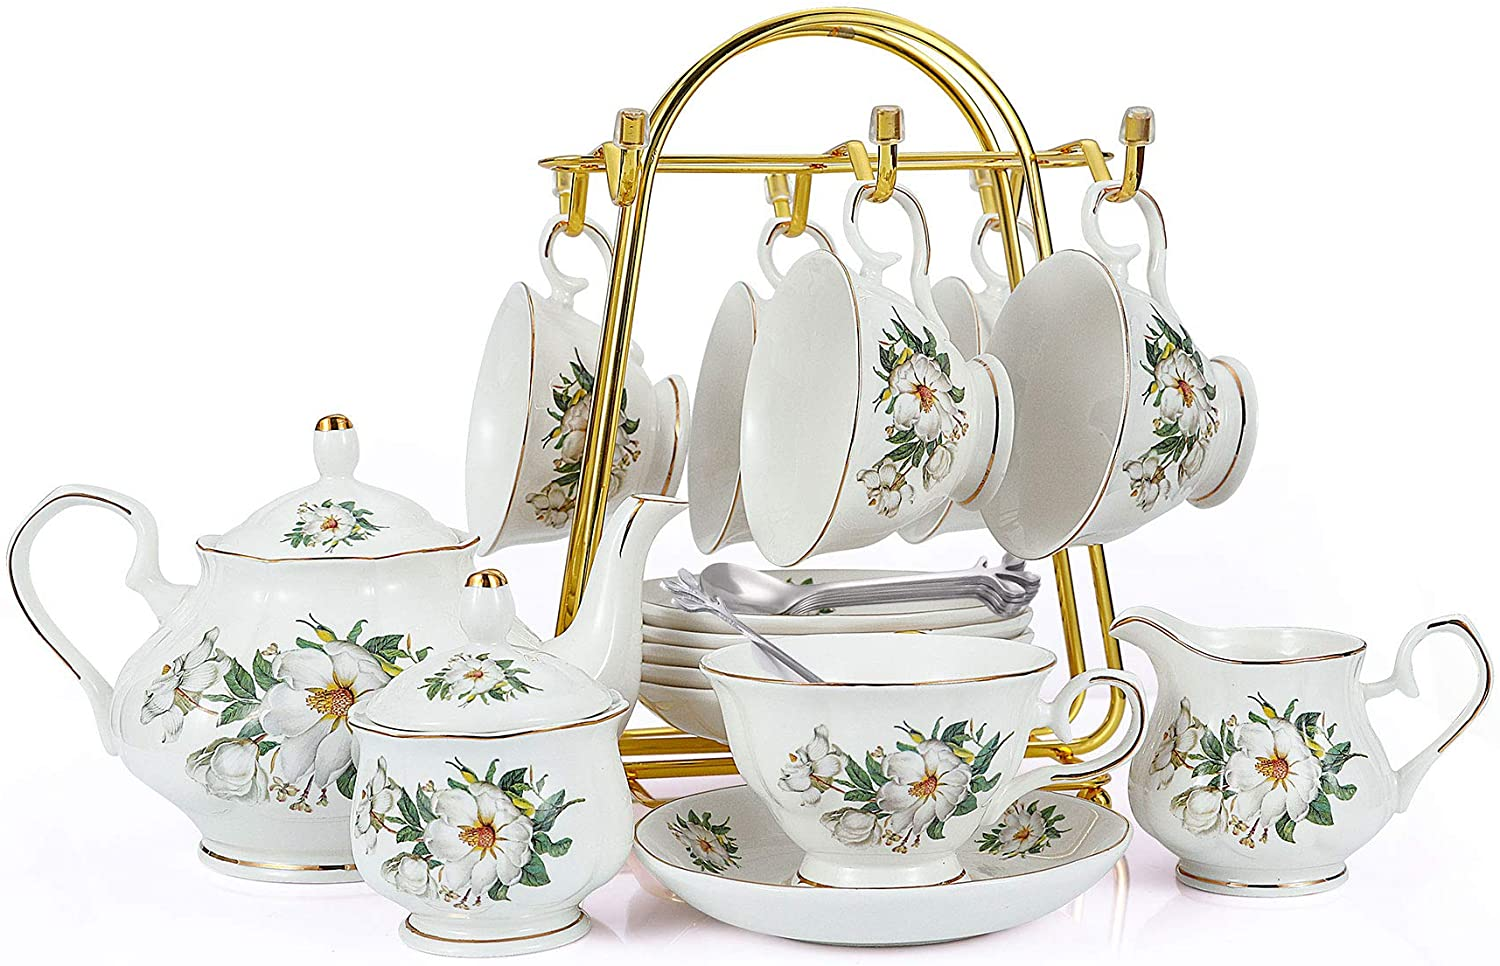 5-Piece Porcelain Ceramic Coffee Tea Gift Sets, Cups& Saucer Service for  5, Teapot, Sugar Bowl, Creamer Pitcher and Teaspoons.